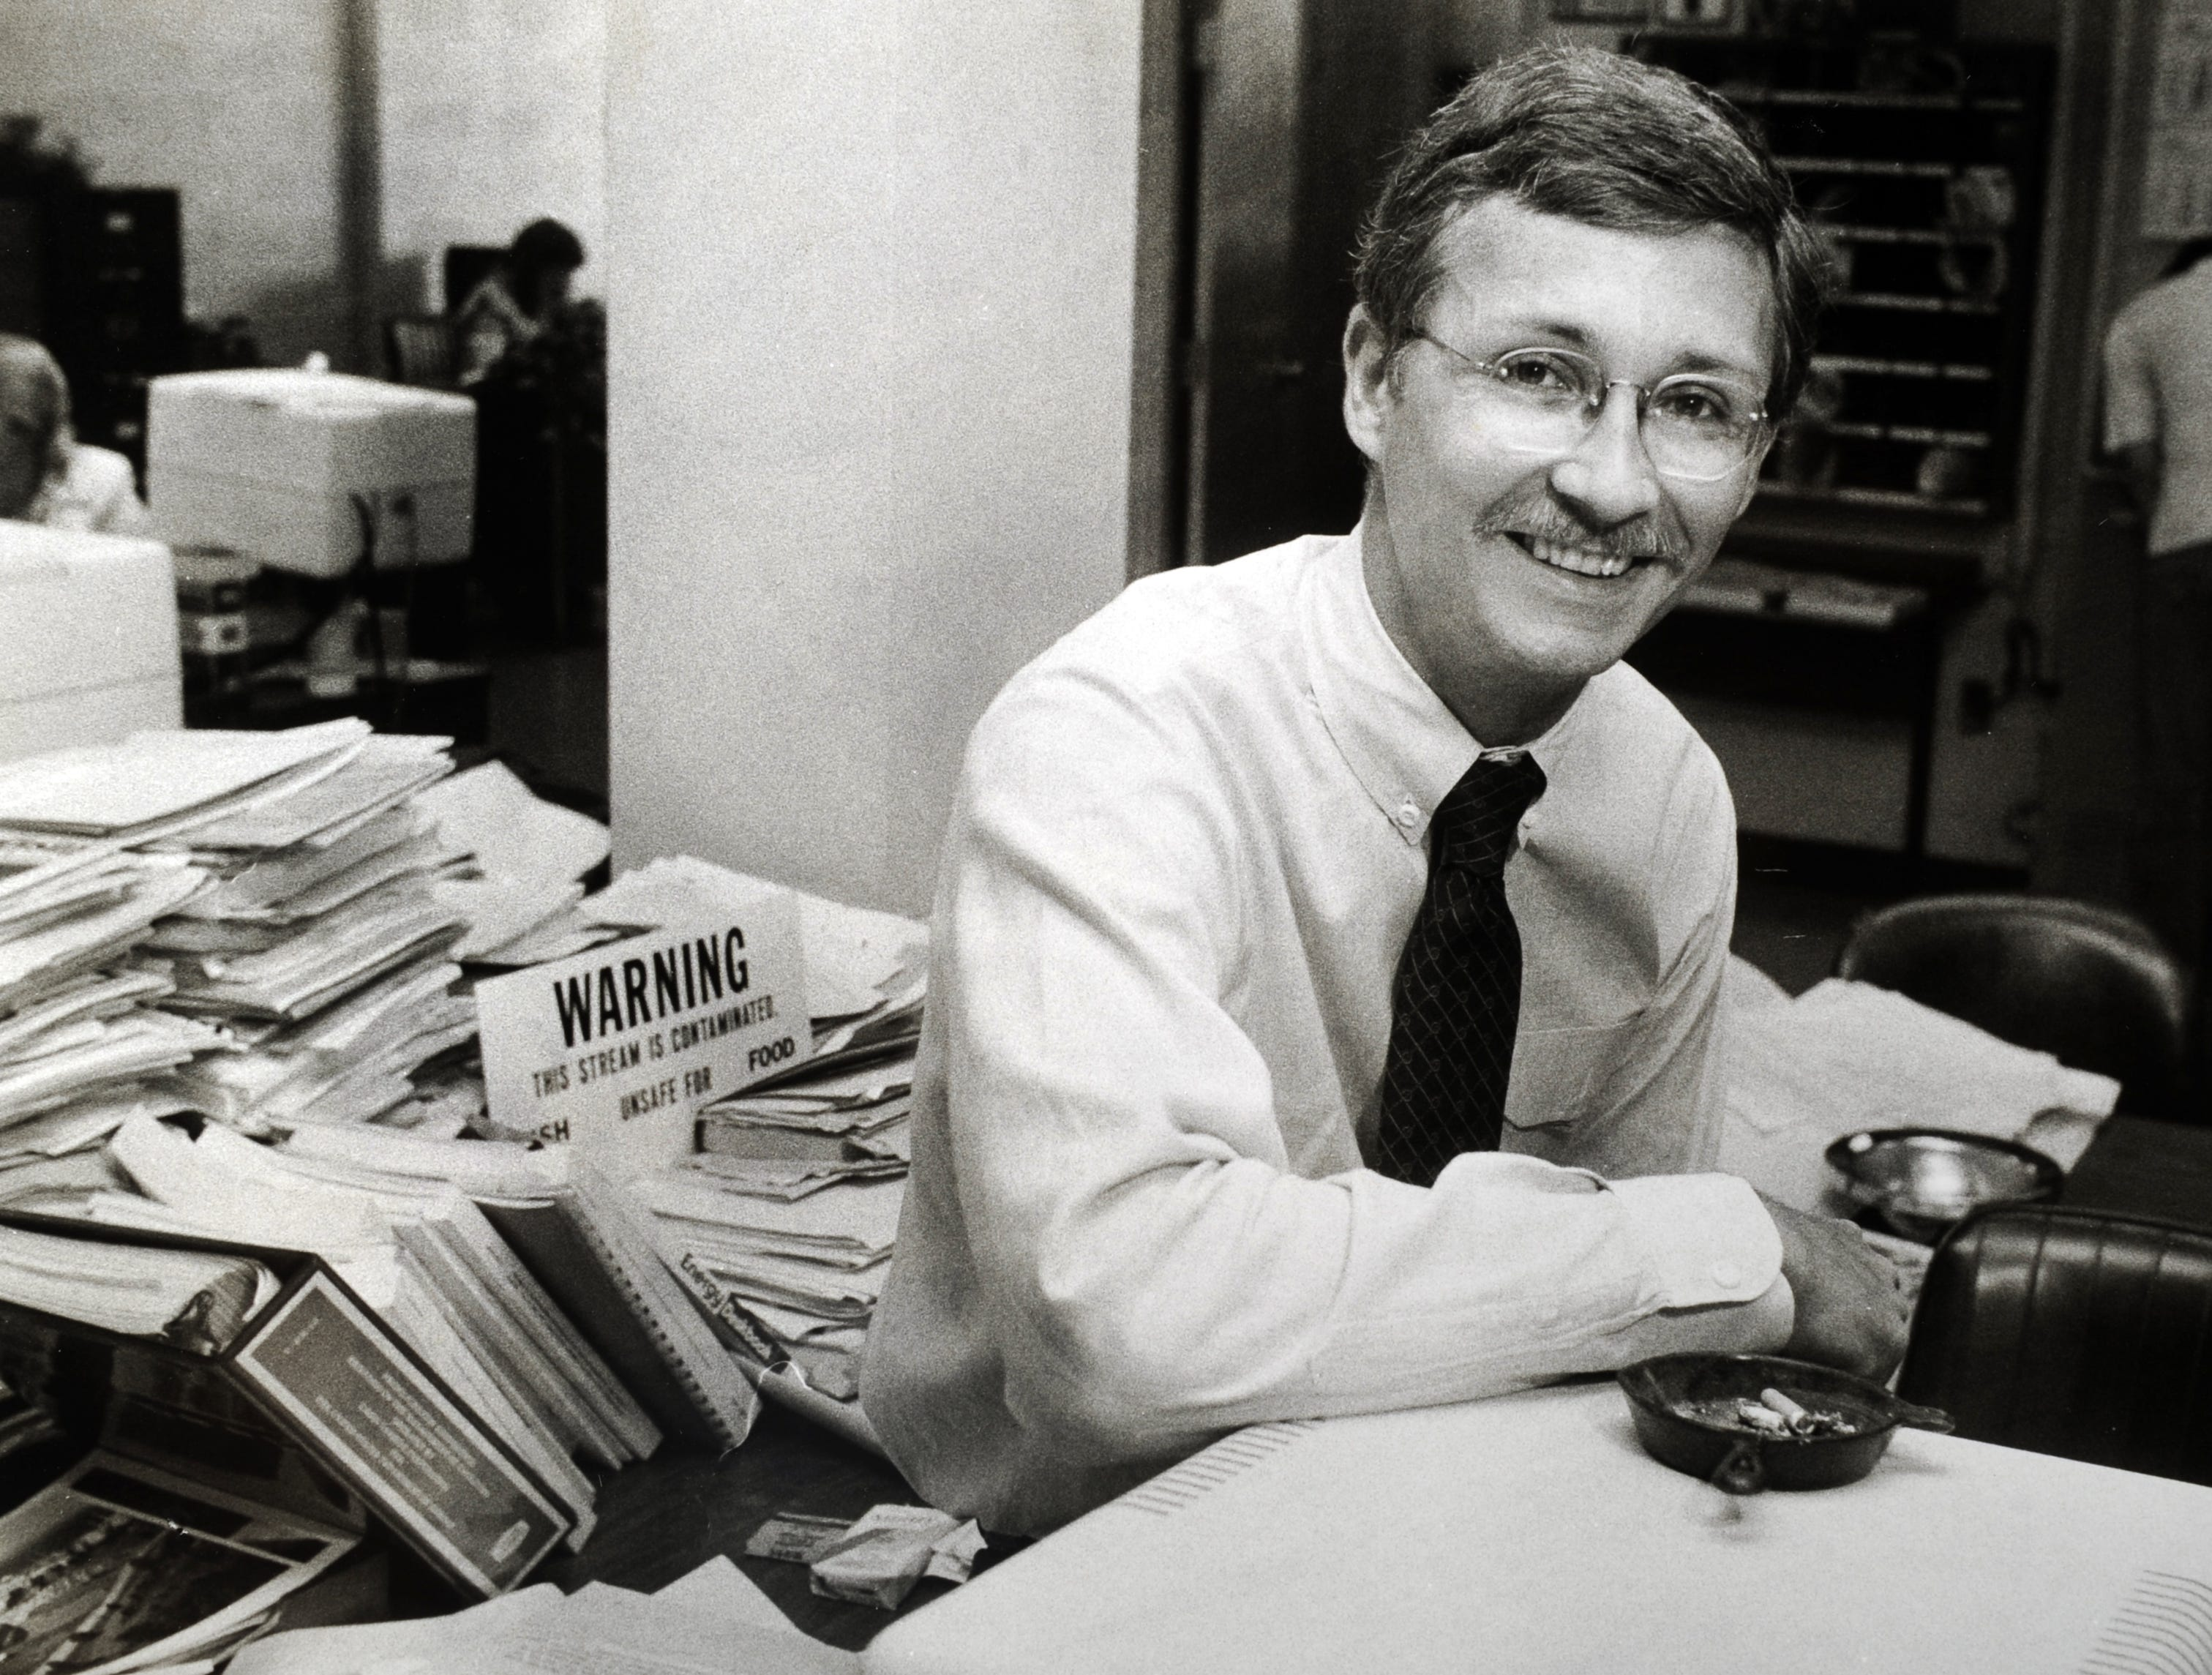 Frank Munger, Knoxville News Sentinel reporter in a photograph circa 1984.